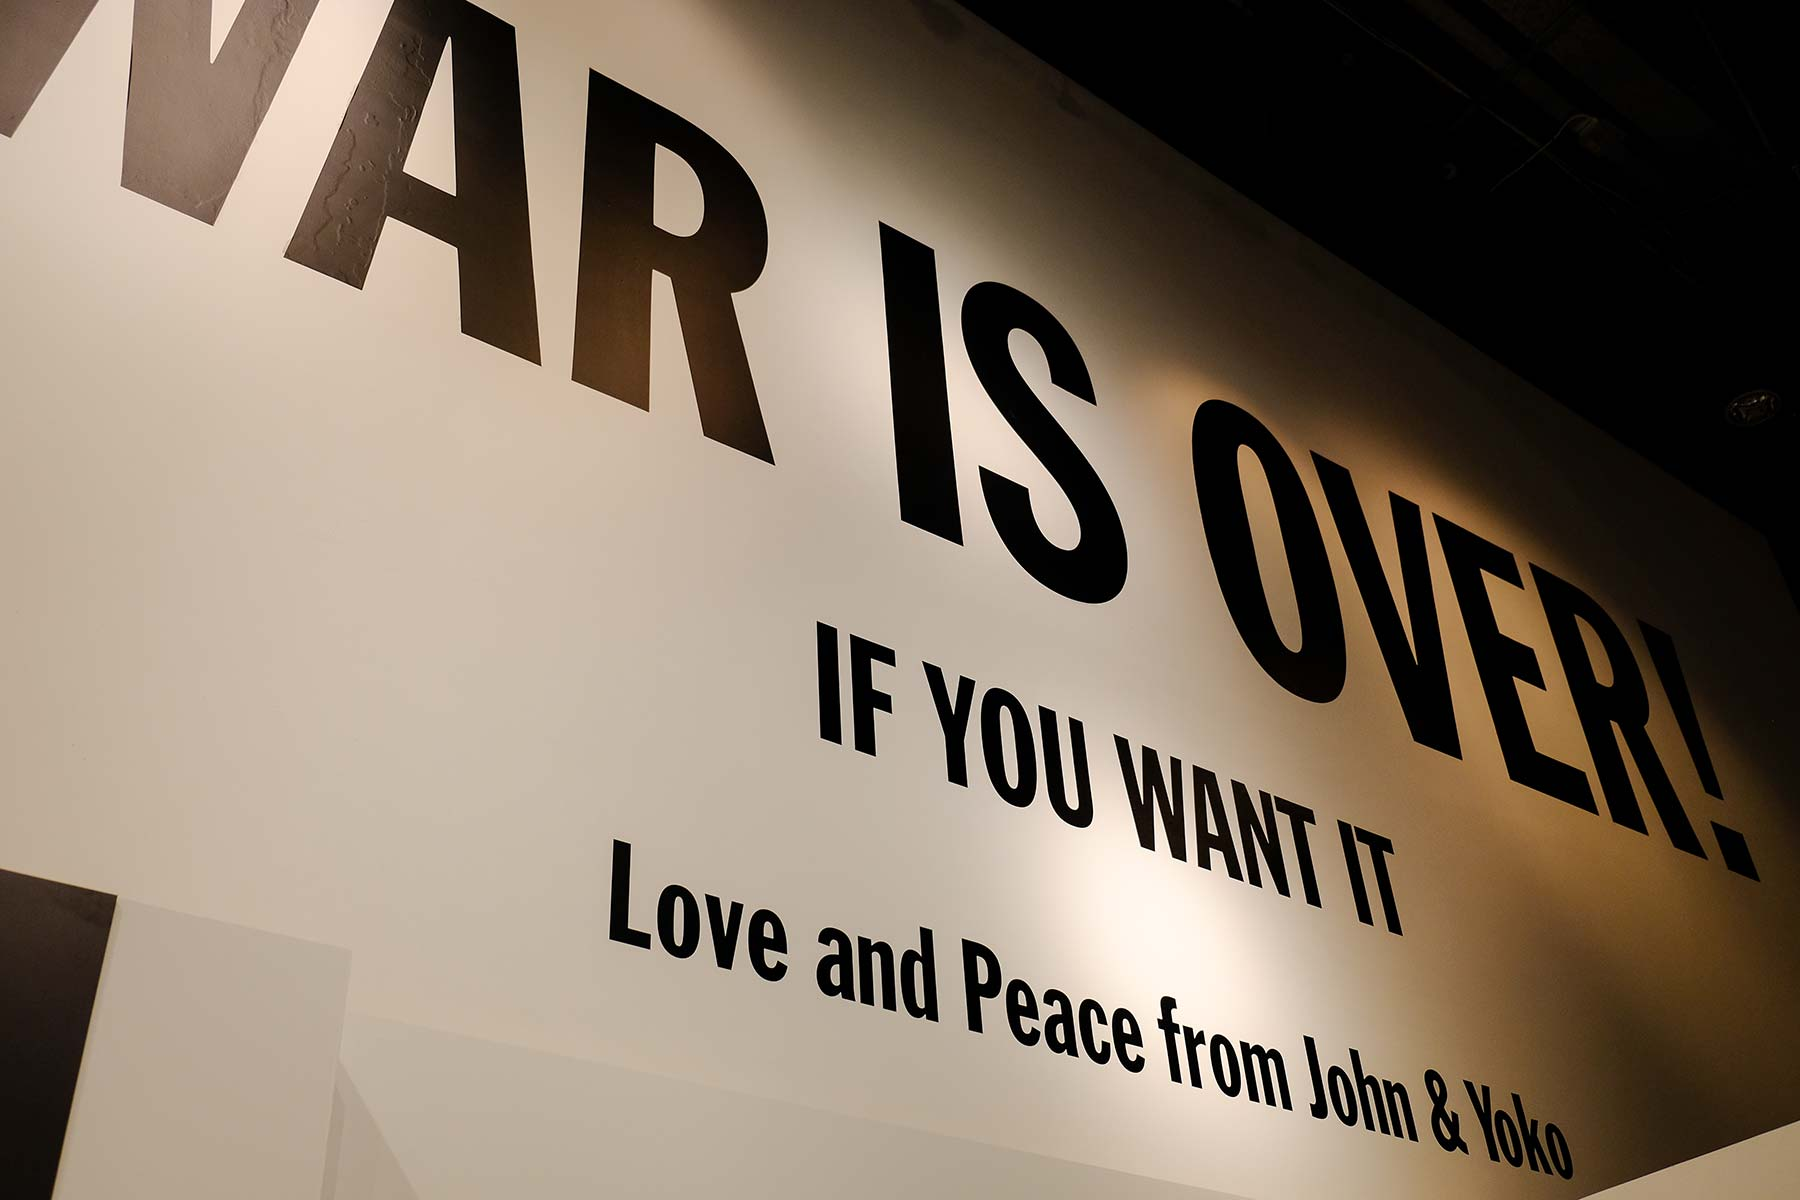 Museum of Liverpool mit der John Lennon Ausstellung 'Imagine Peace'